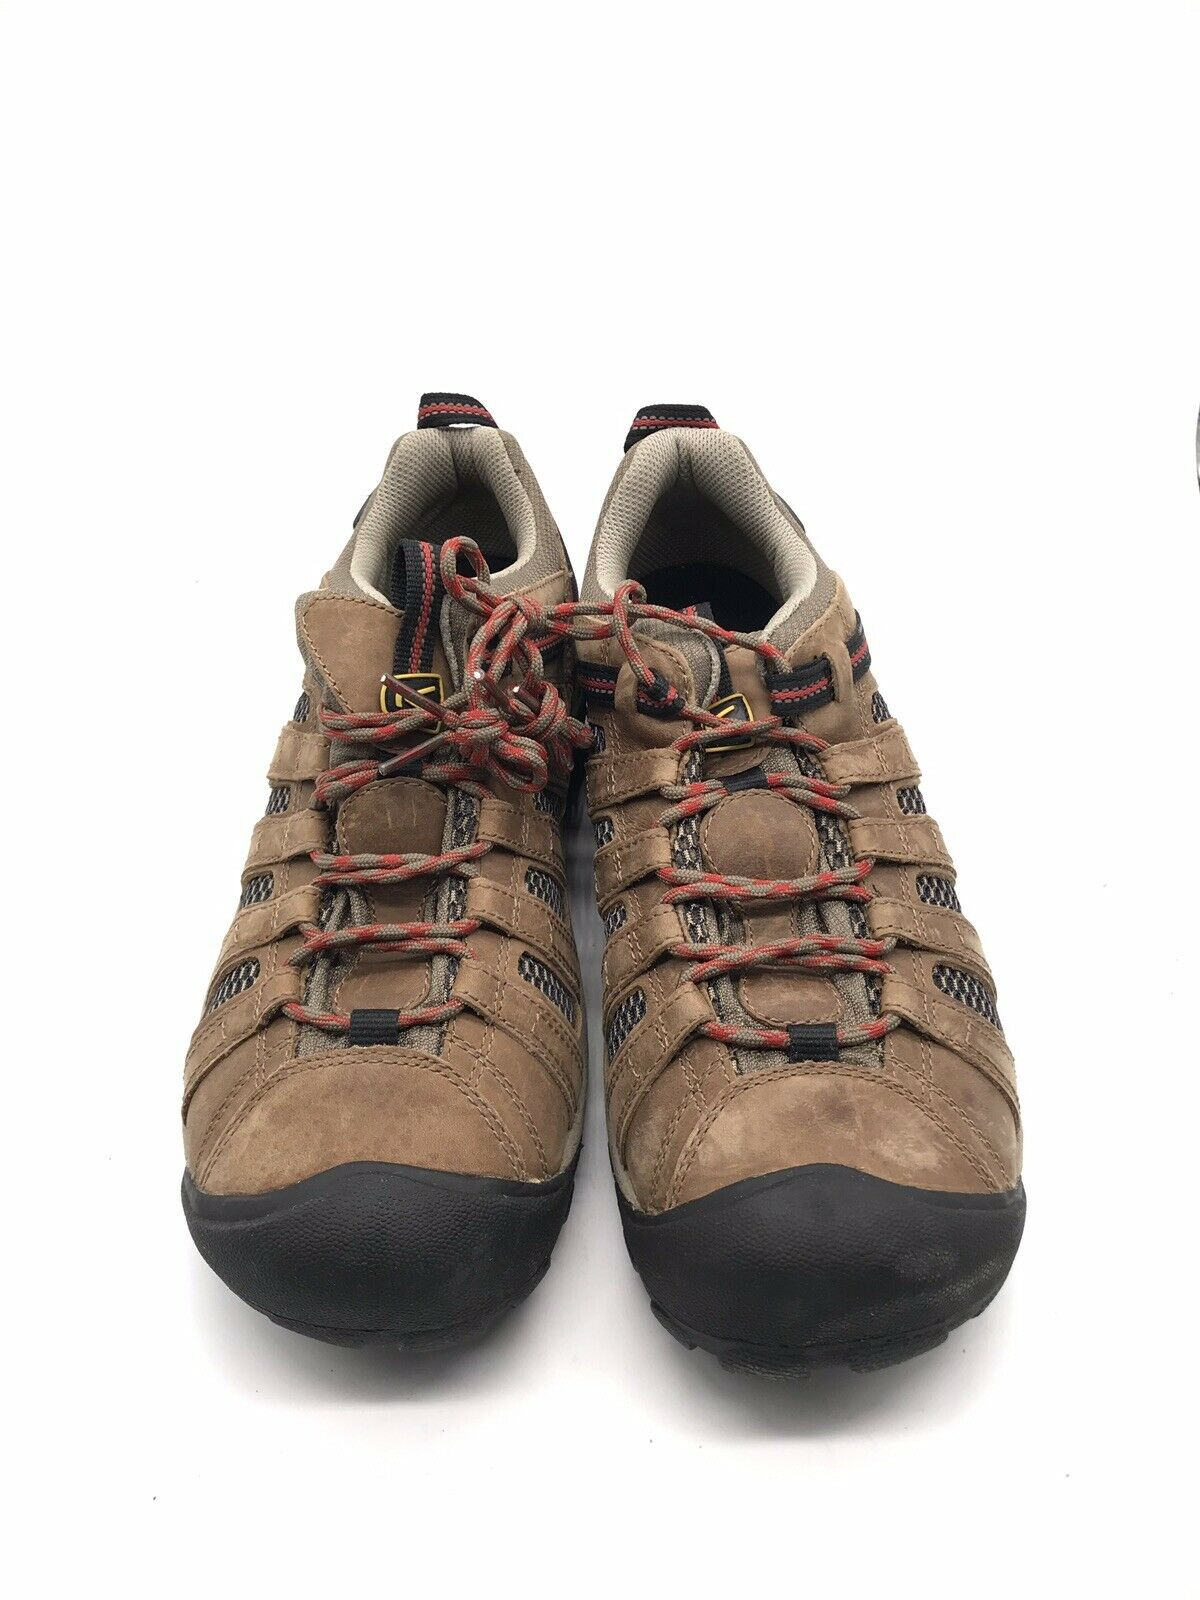 Keen Utility homme Detroit Faible ESD Steel Toe Travail Chaussures 1007012D Taille 10.5 b11